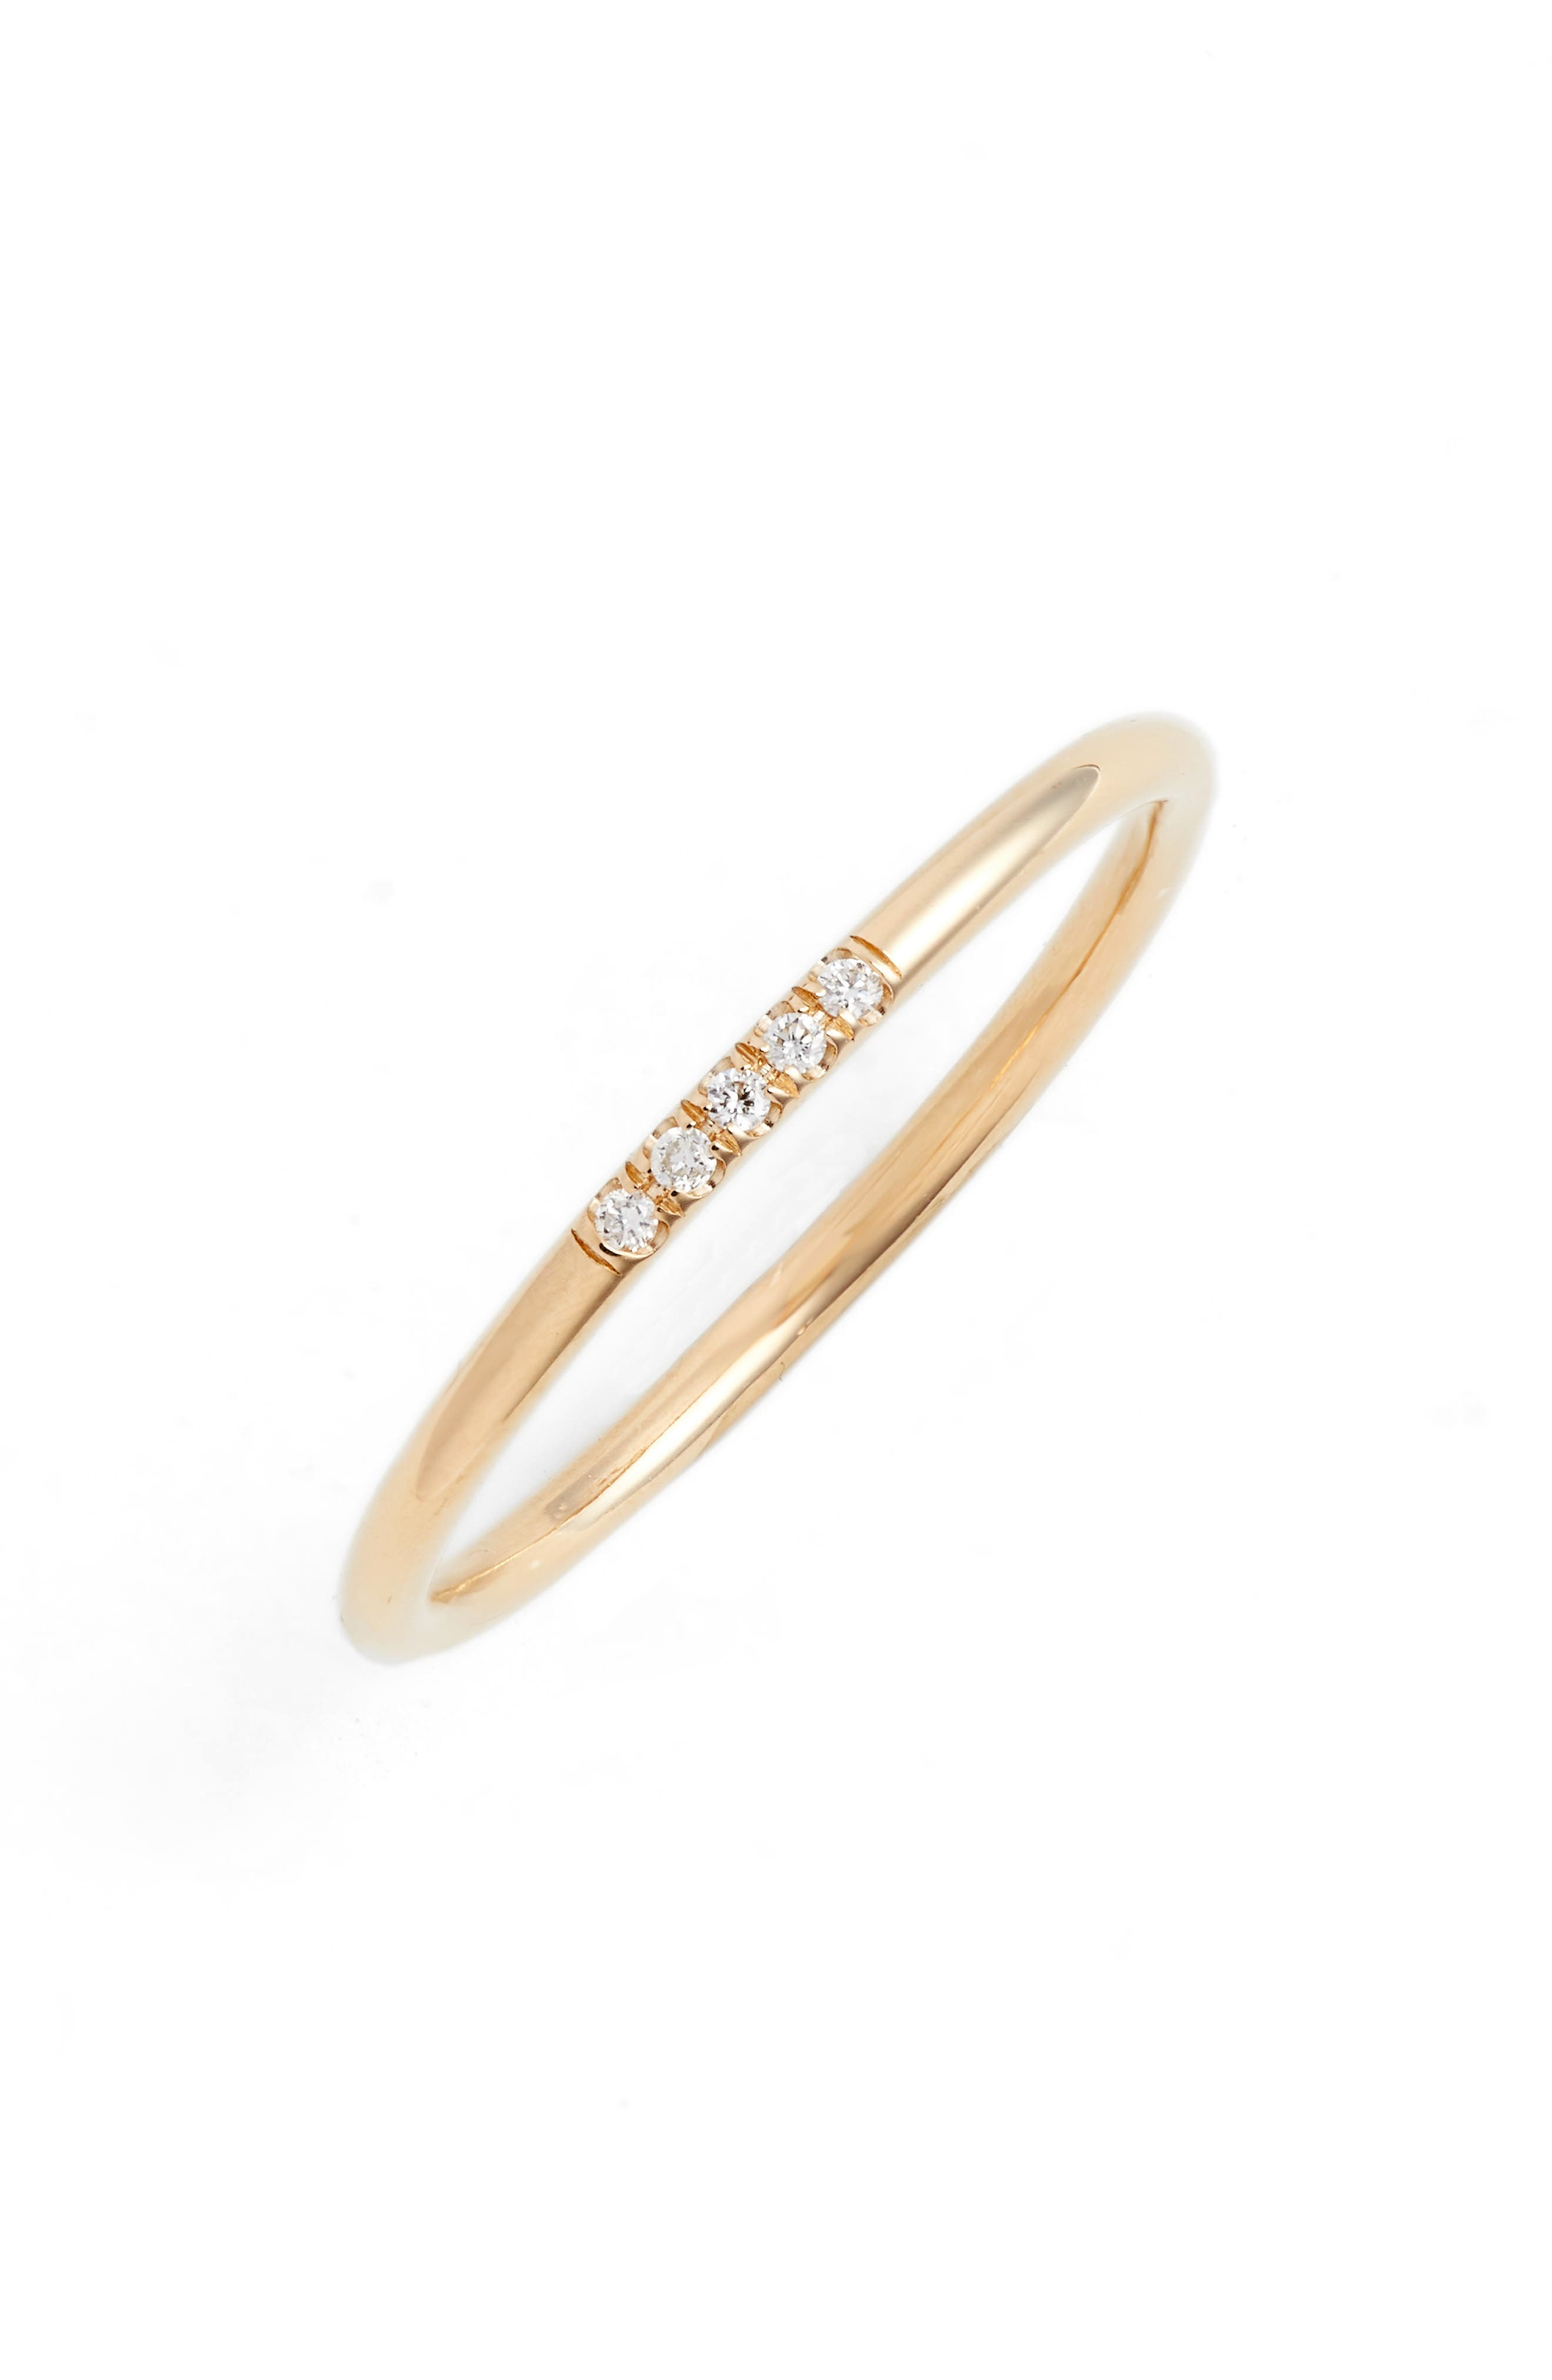 French Pavé Diamond Stacking Ring,                             Main thumbnail 1, color,                             YELLOW GOLD